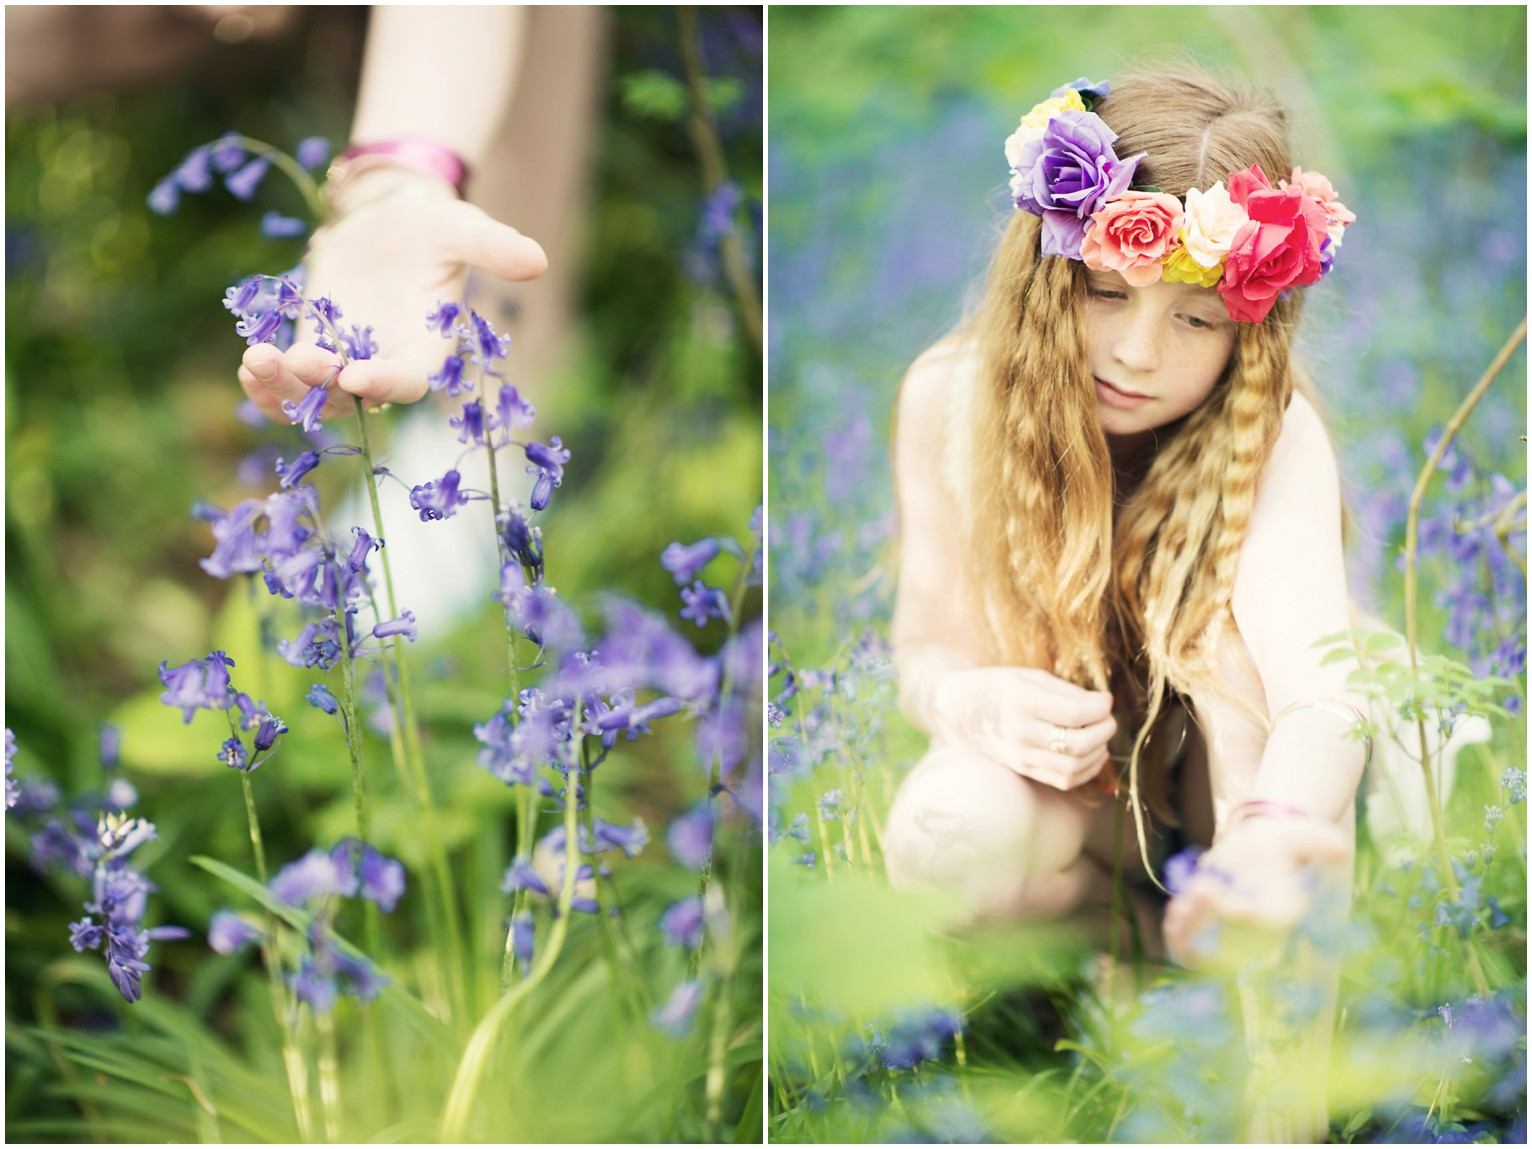 bluebells photography lyanne wylde